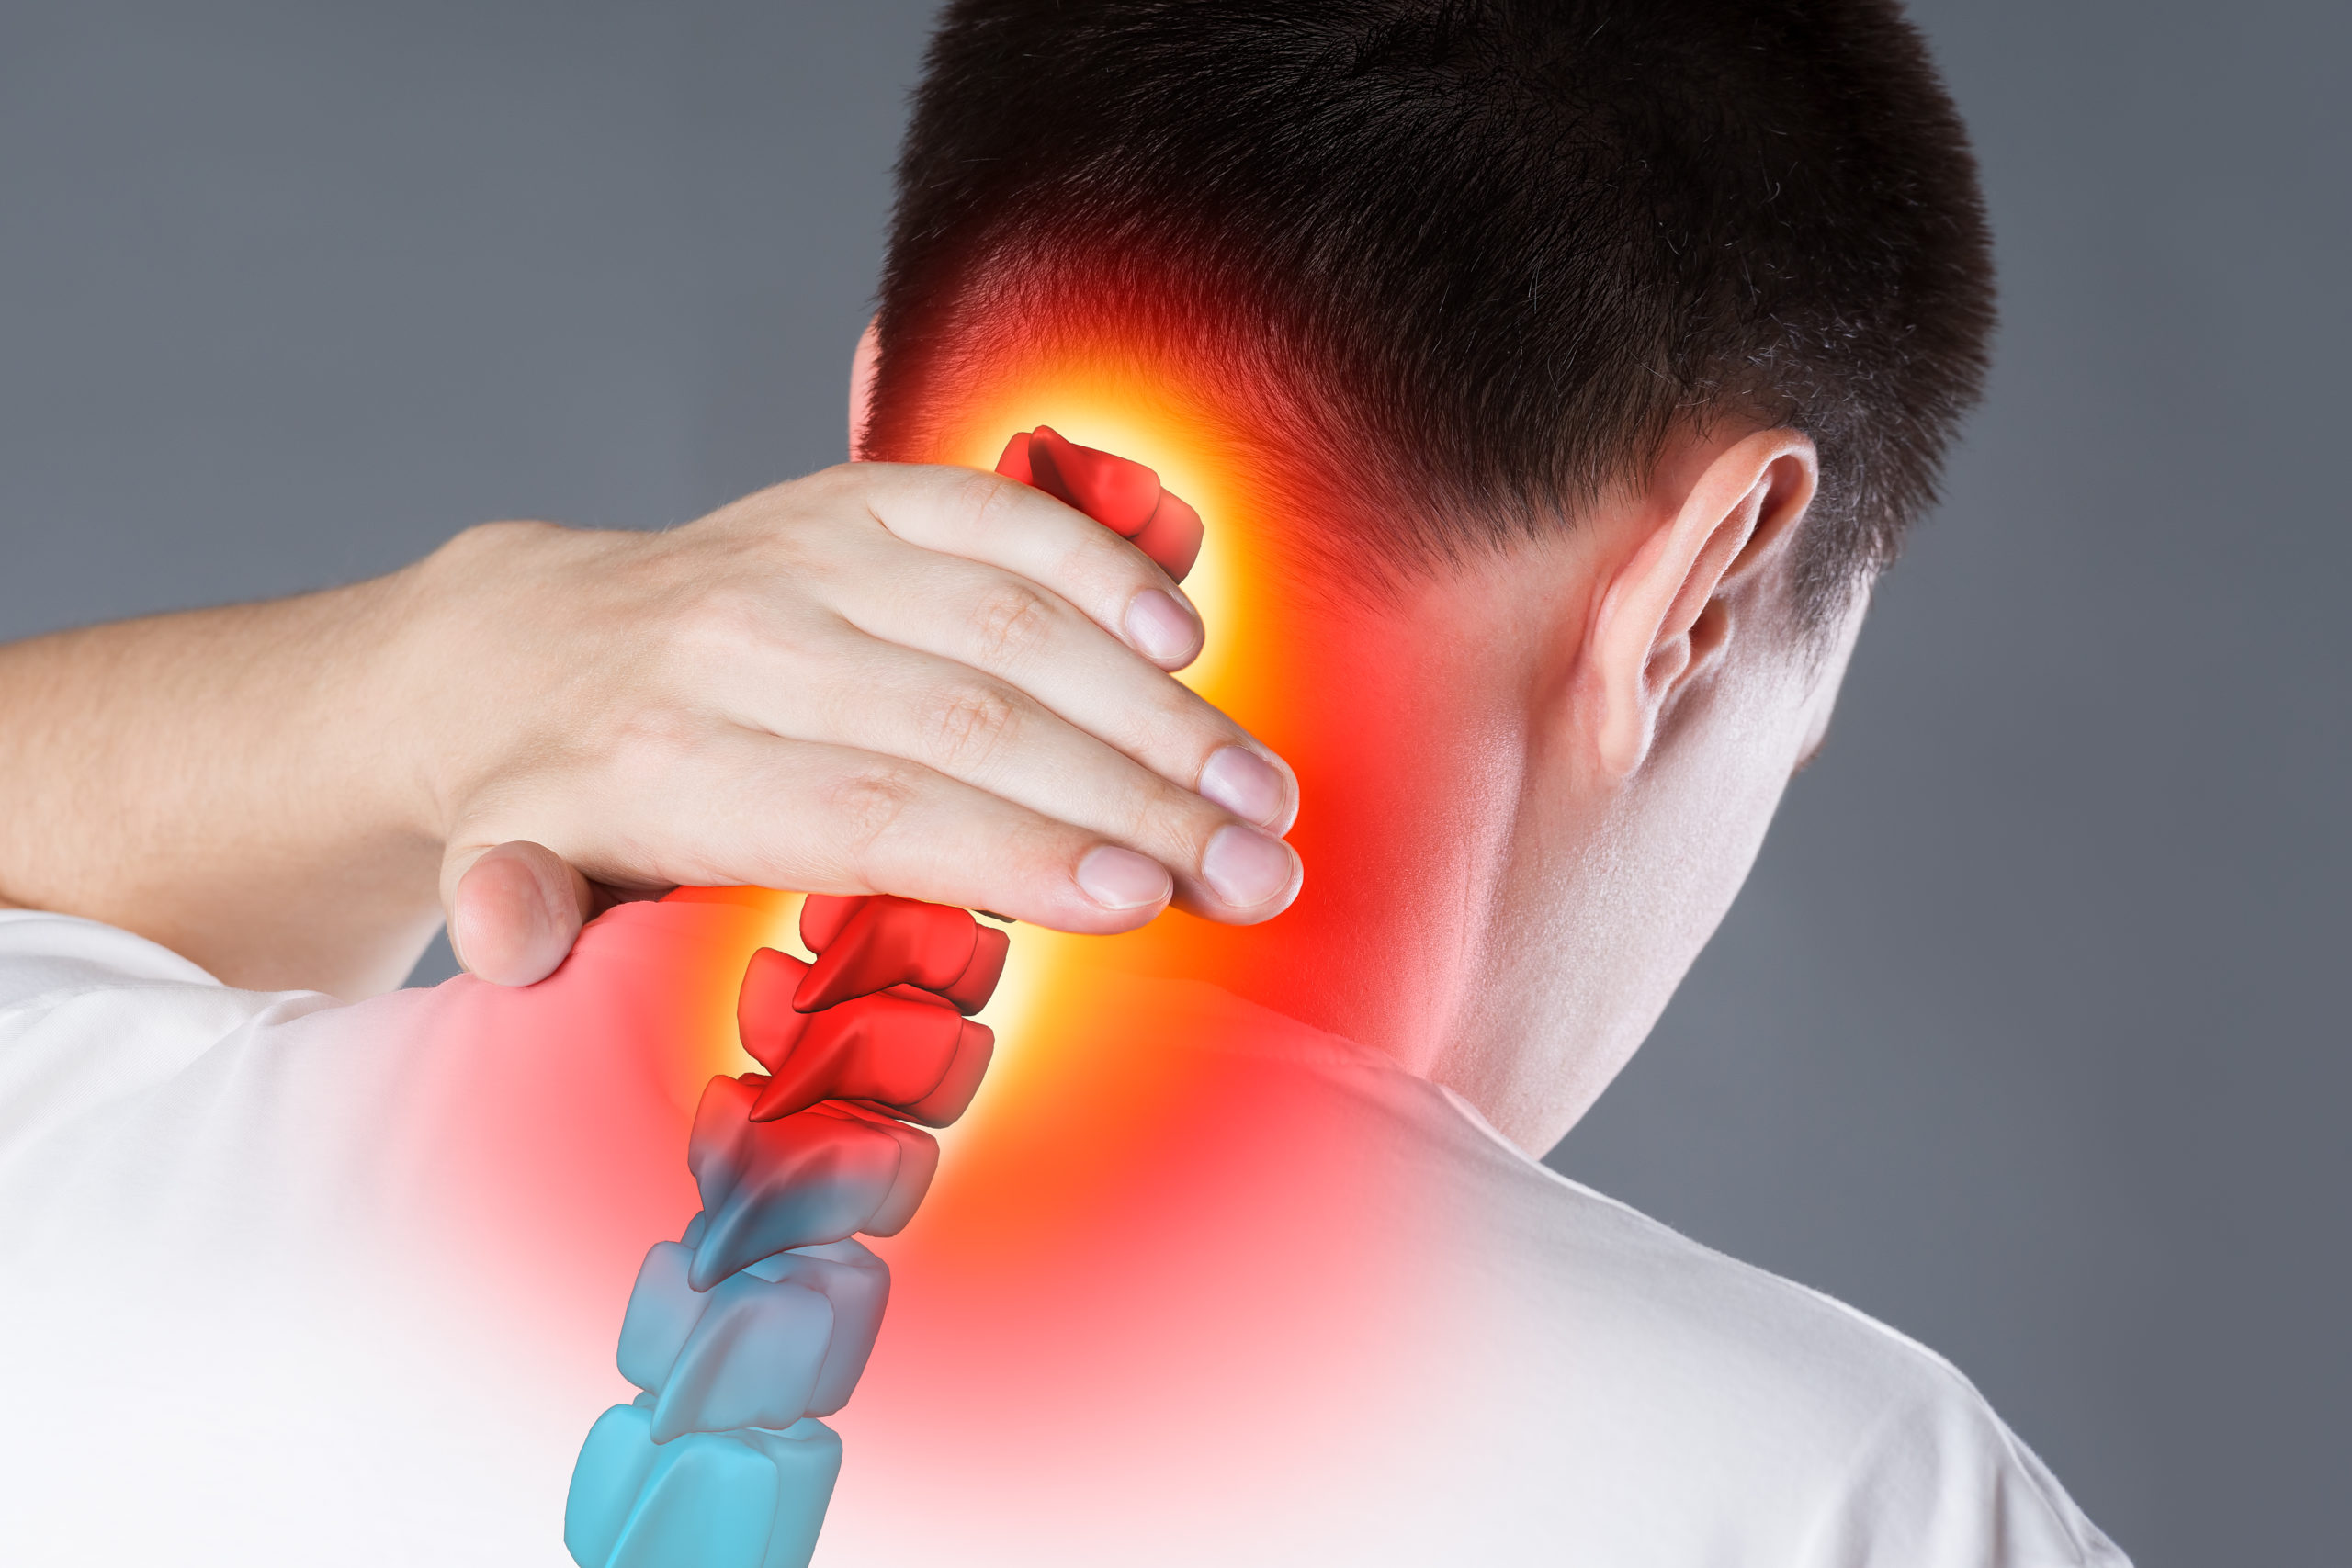 Whiplash causing neck and back pain